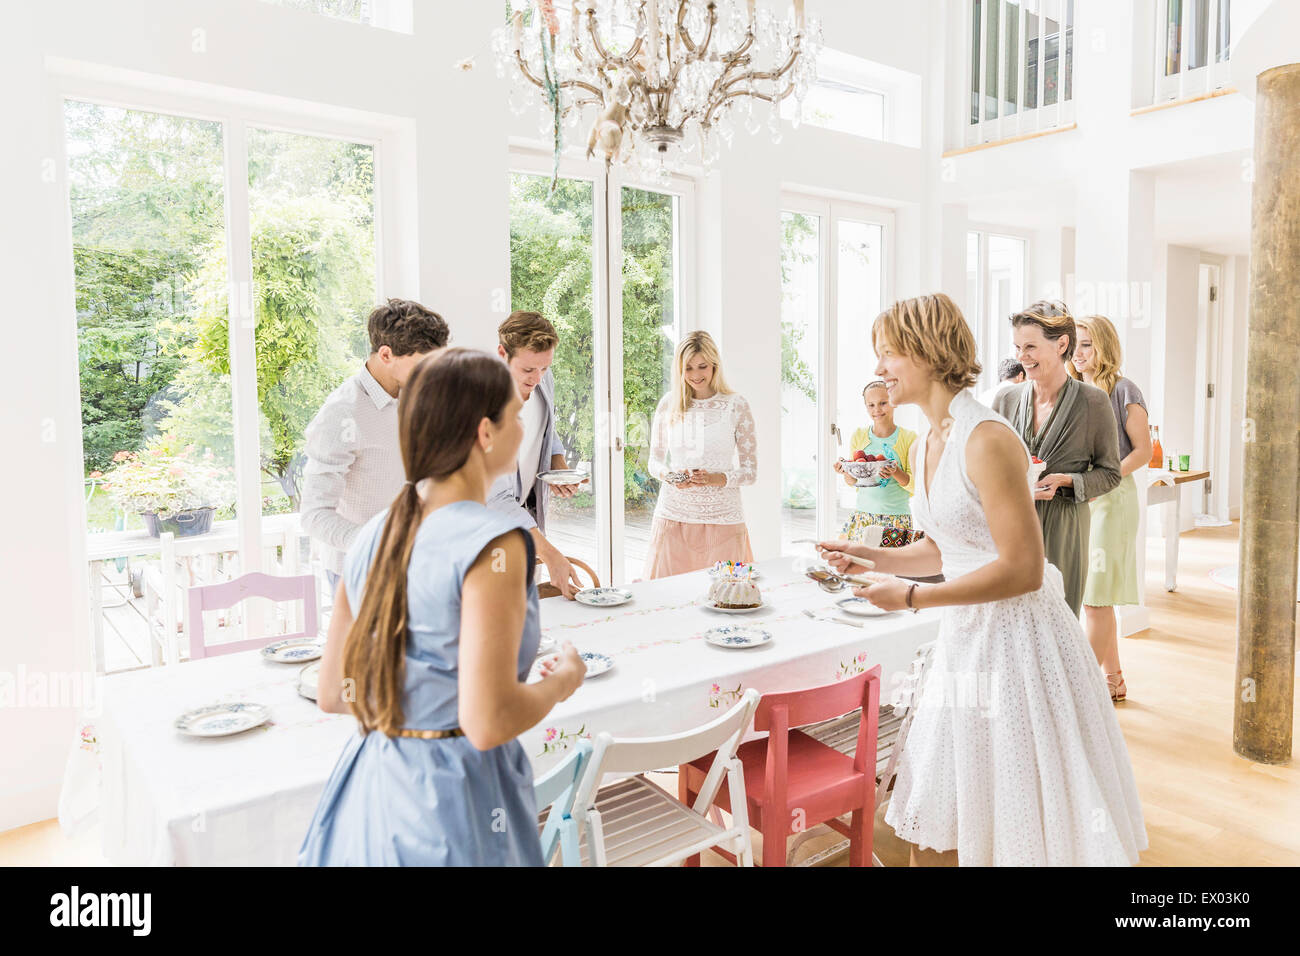 Family team preparing dining room for birthday party - Stock Image